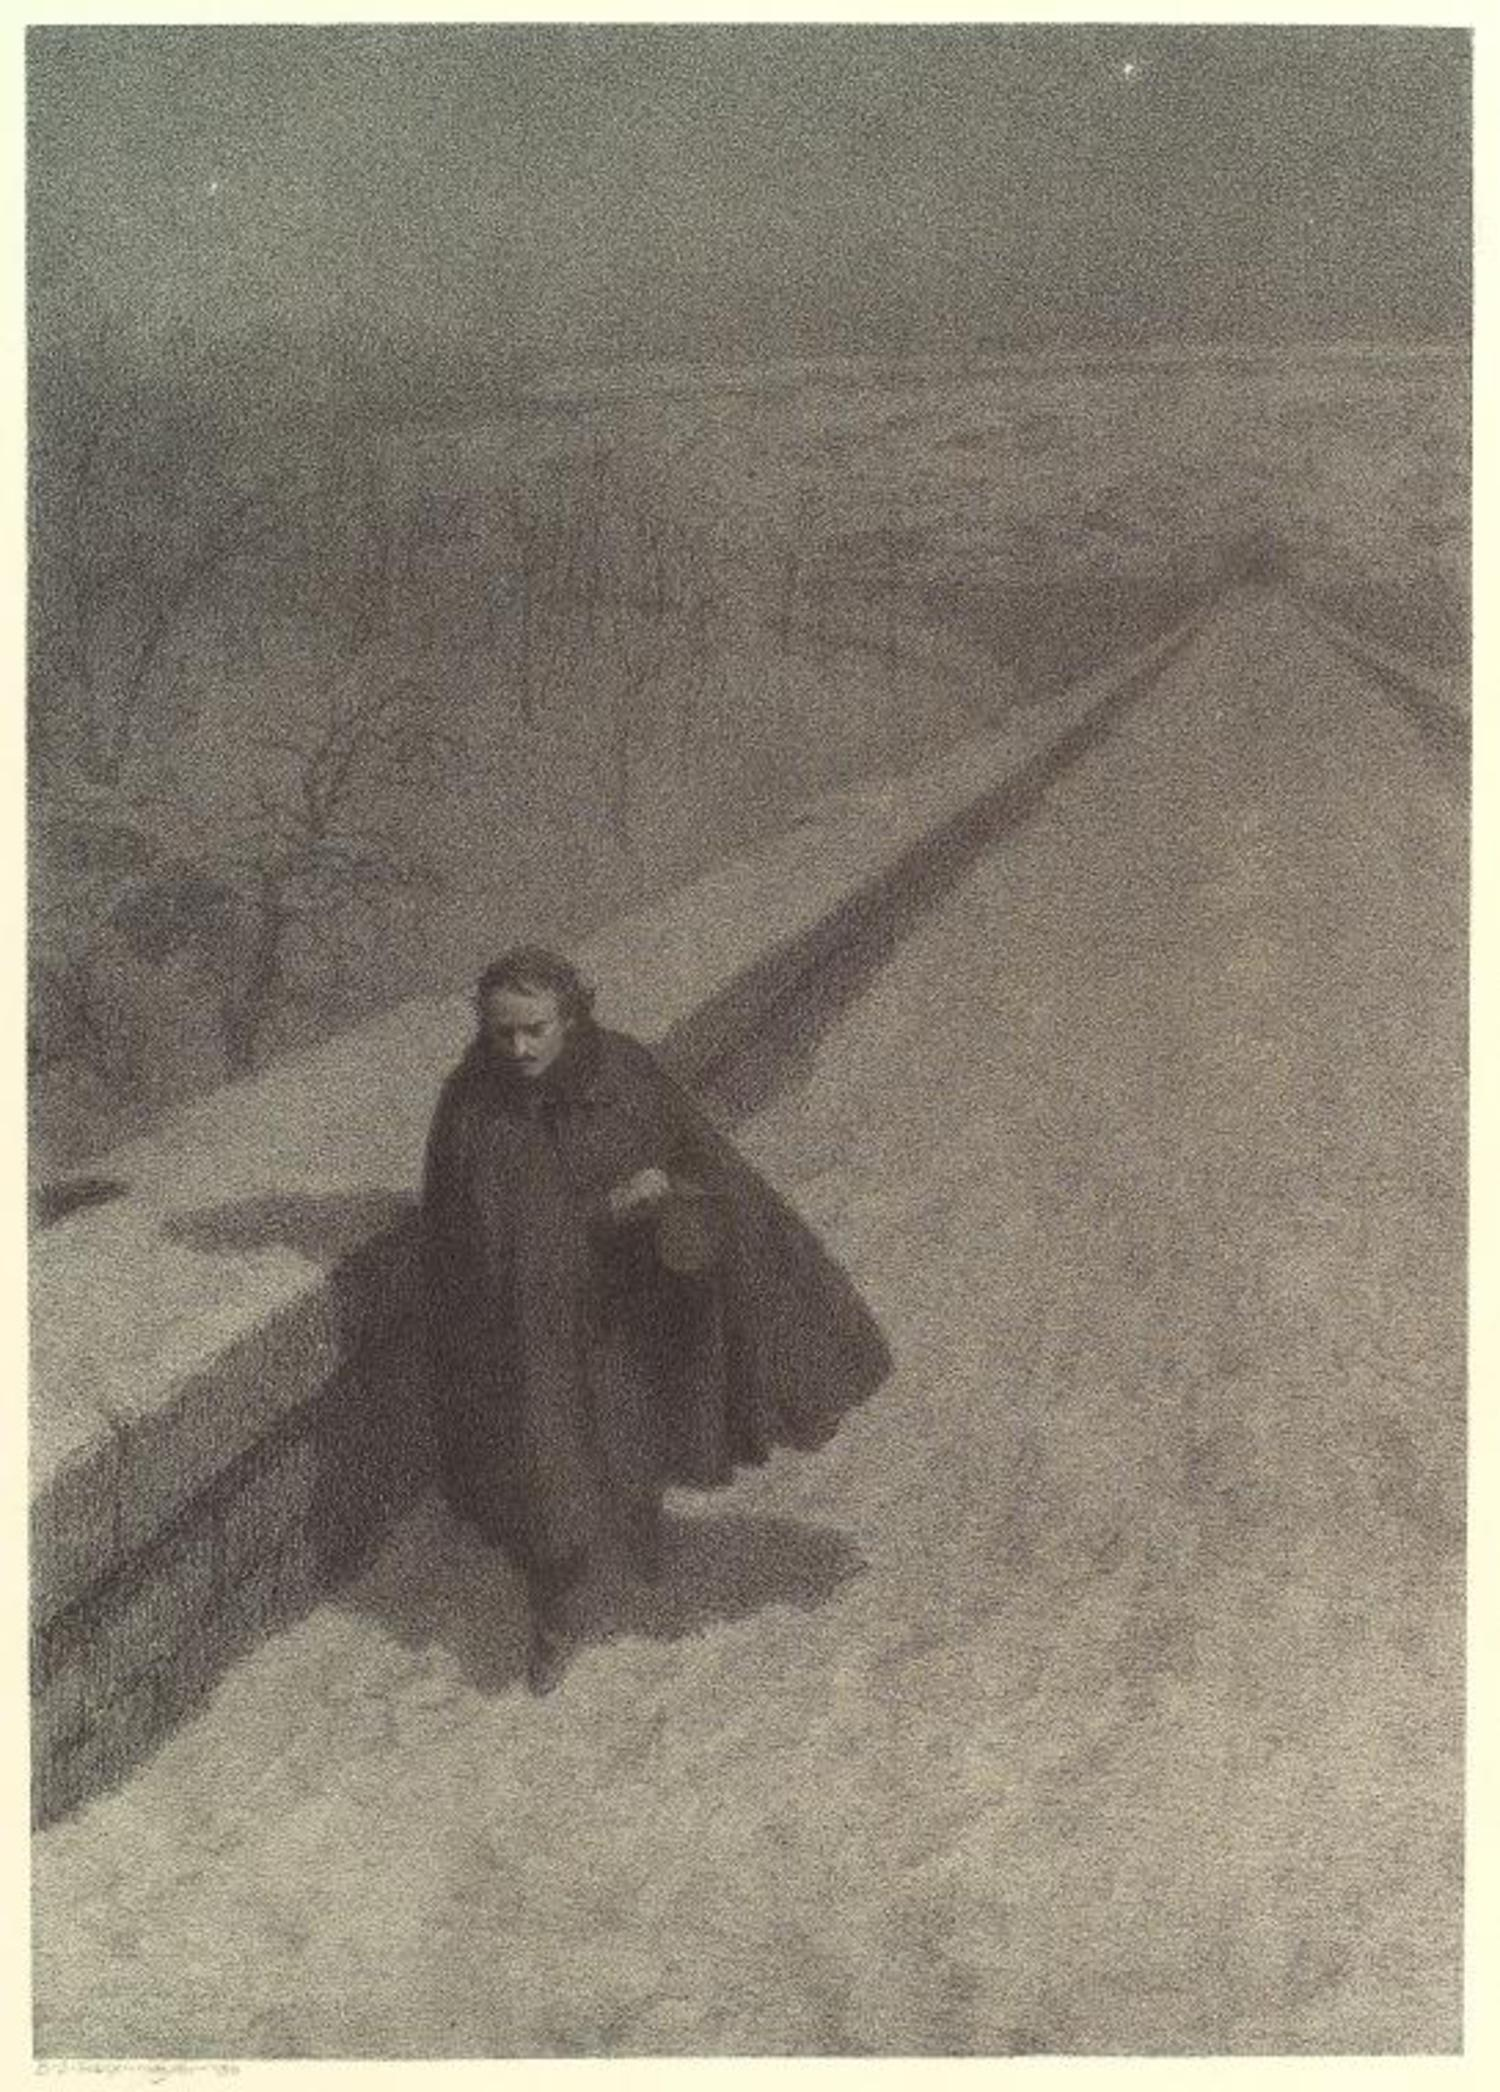 Edgar Allan Poe Walking High Bridge